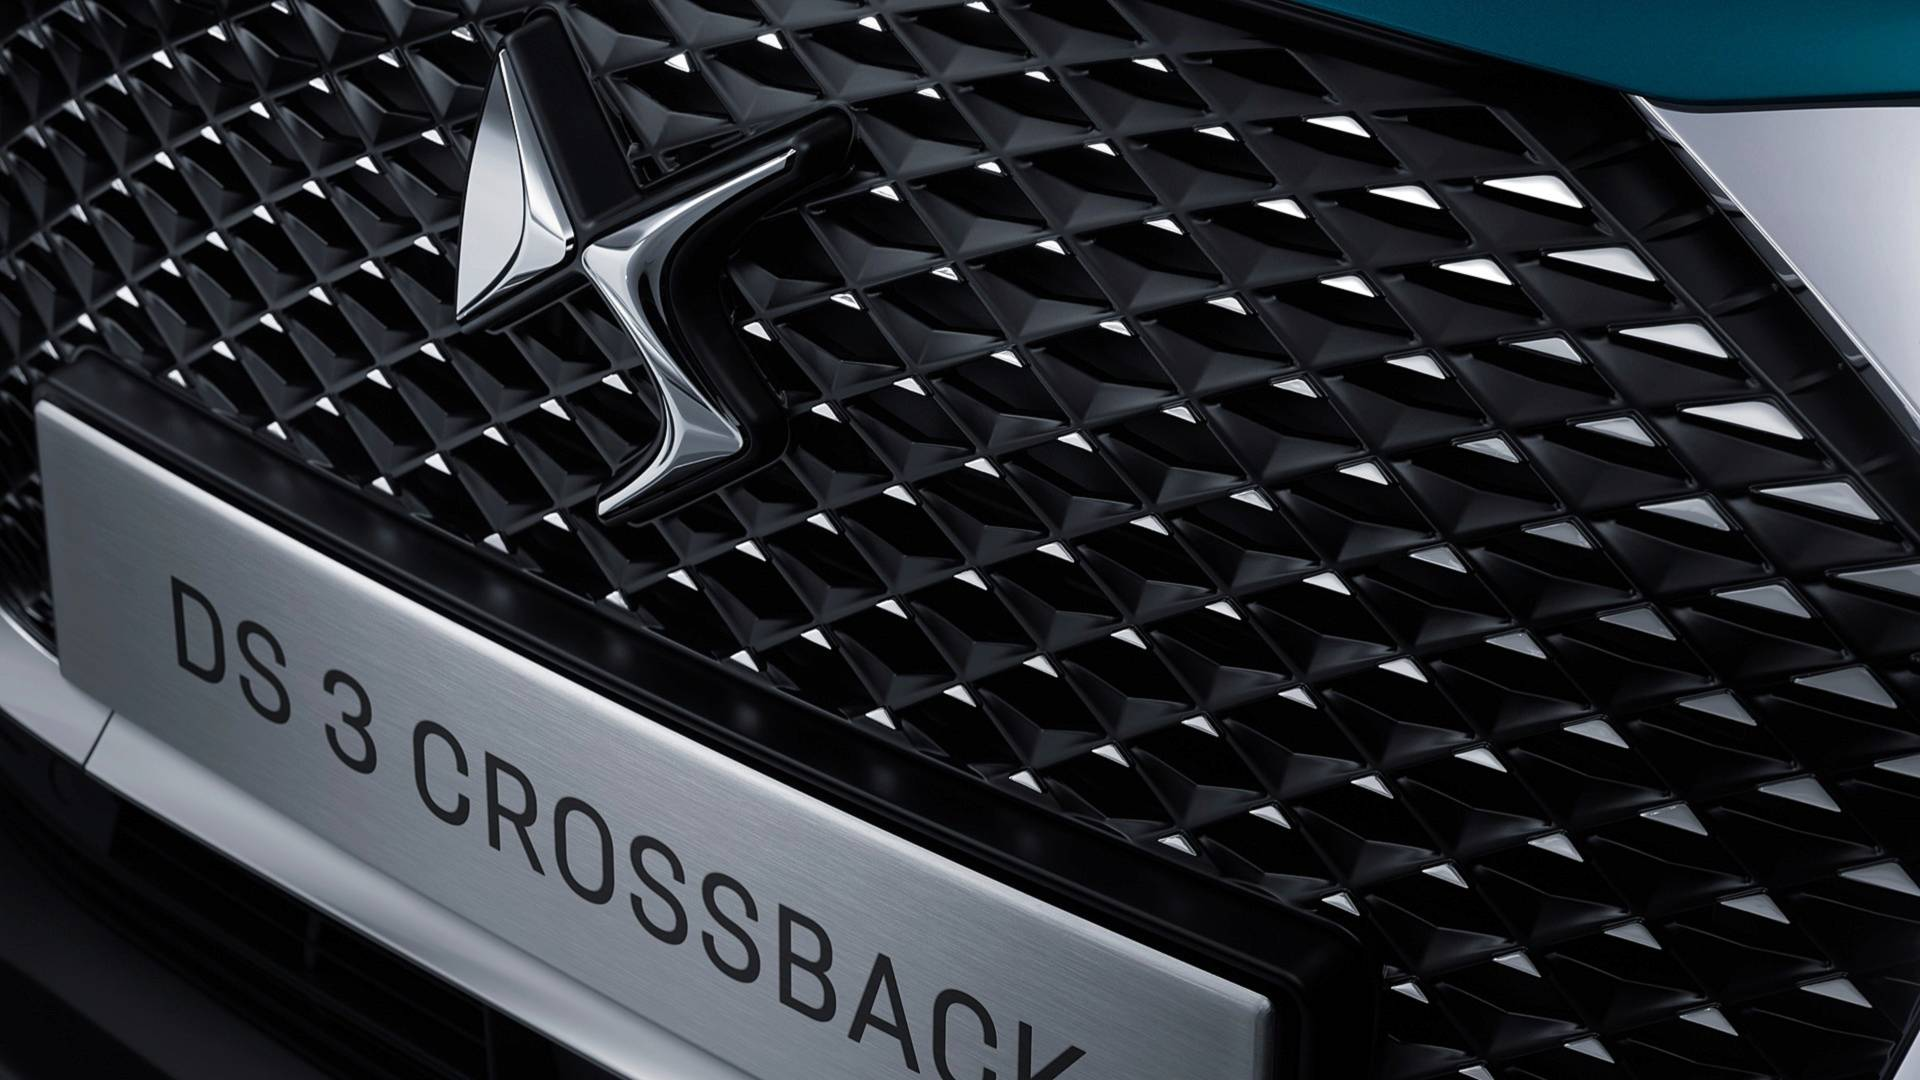 ds-3-crossback-2019 (4)